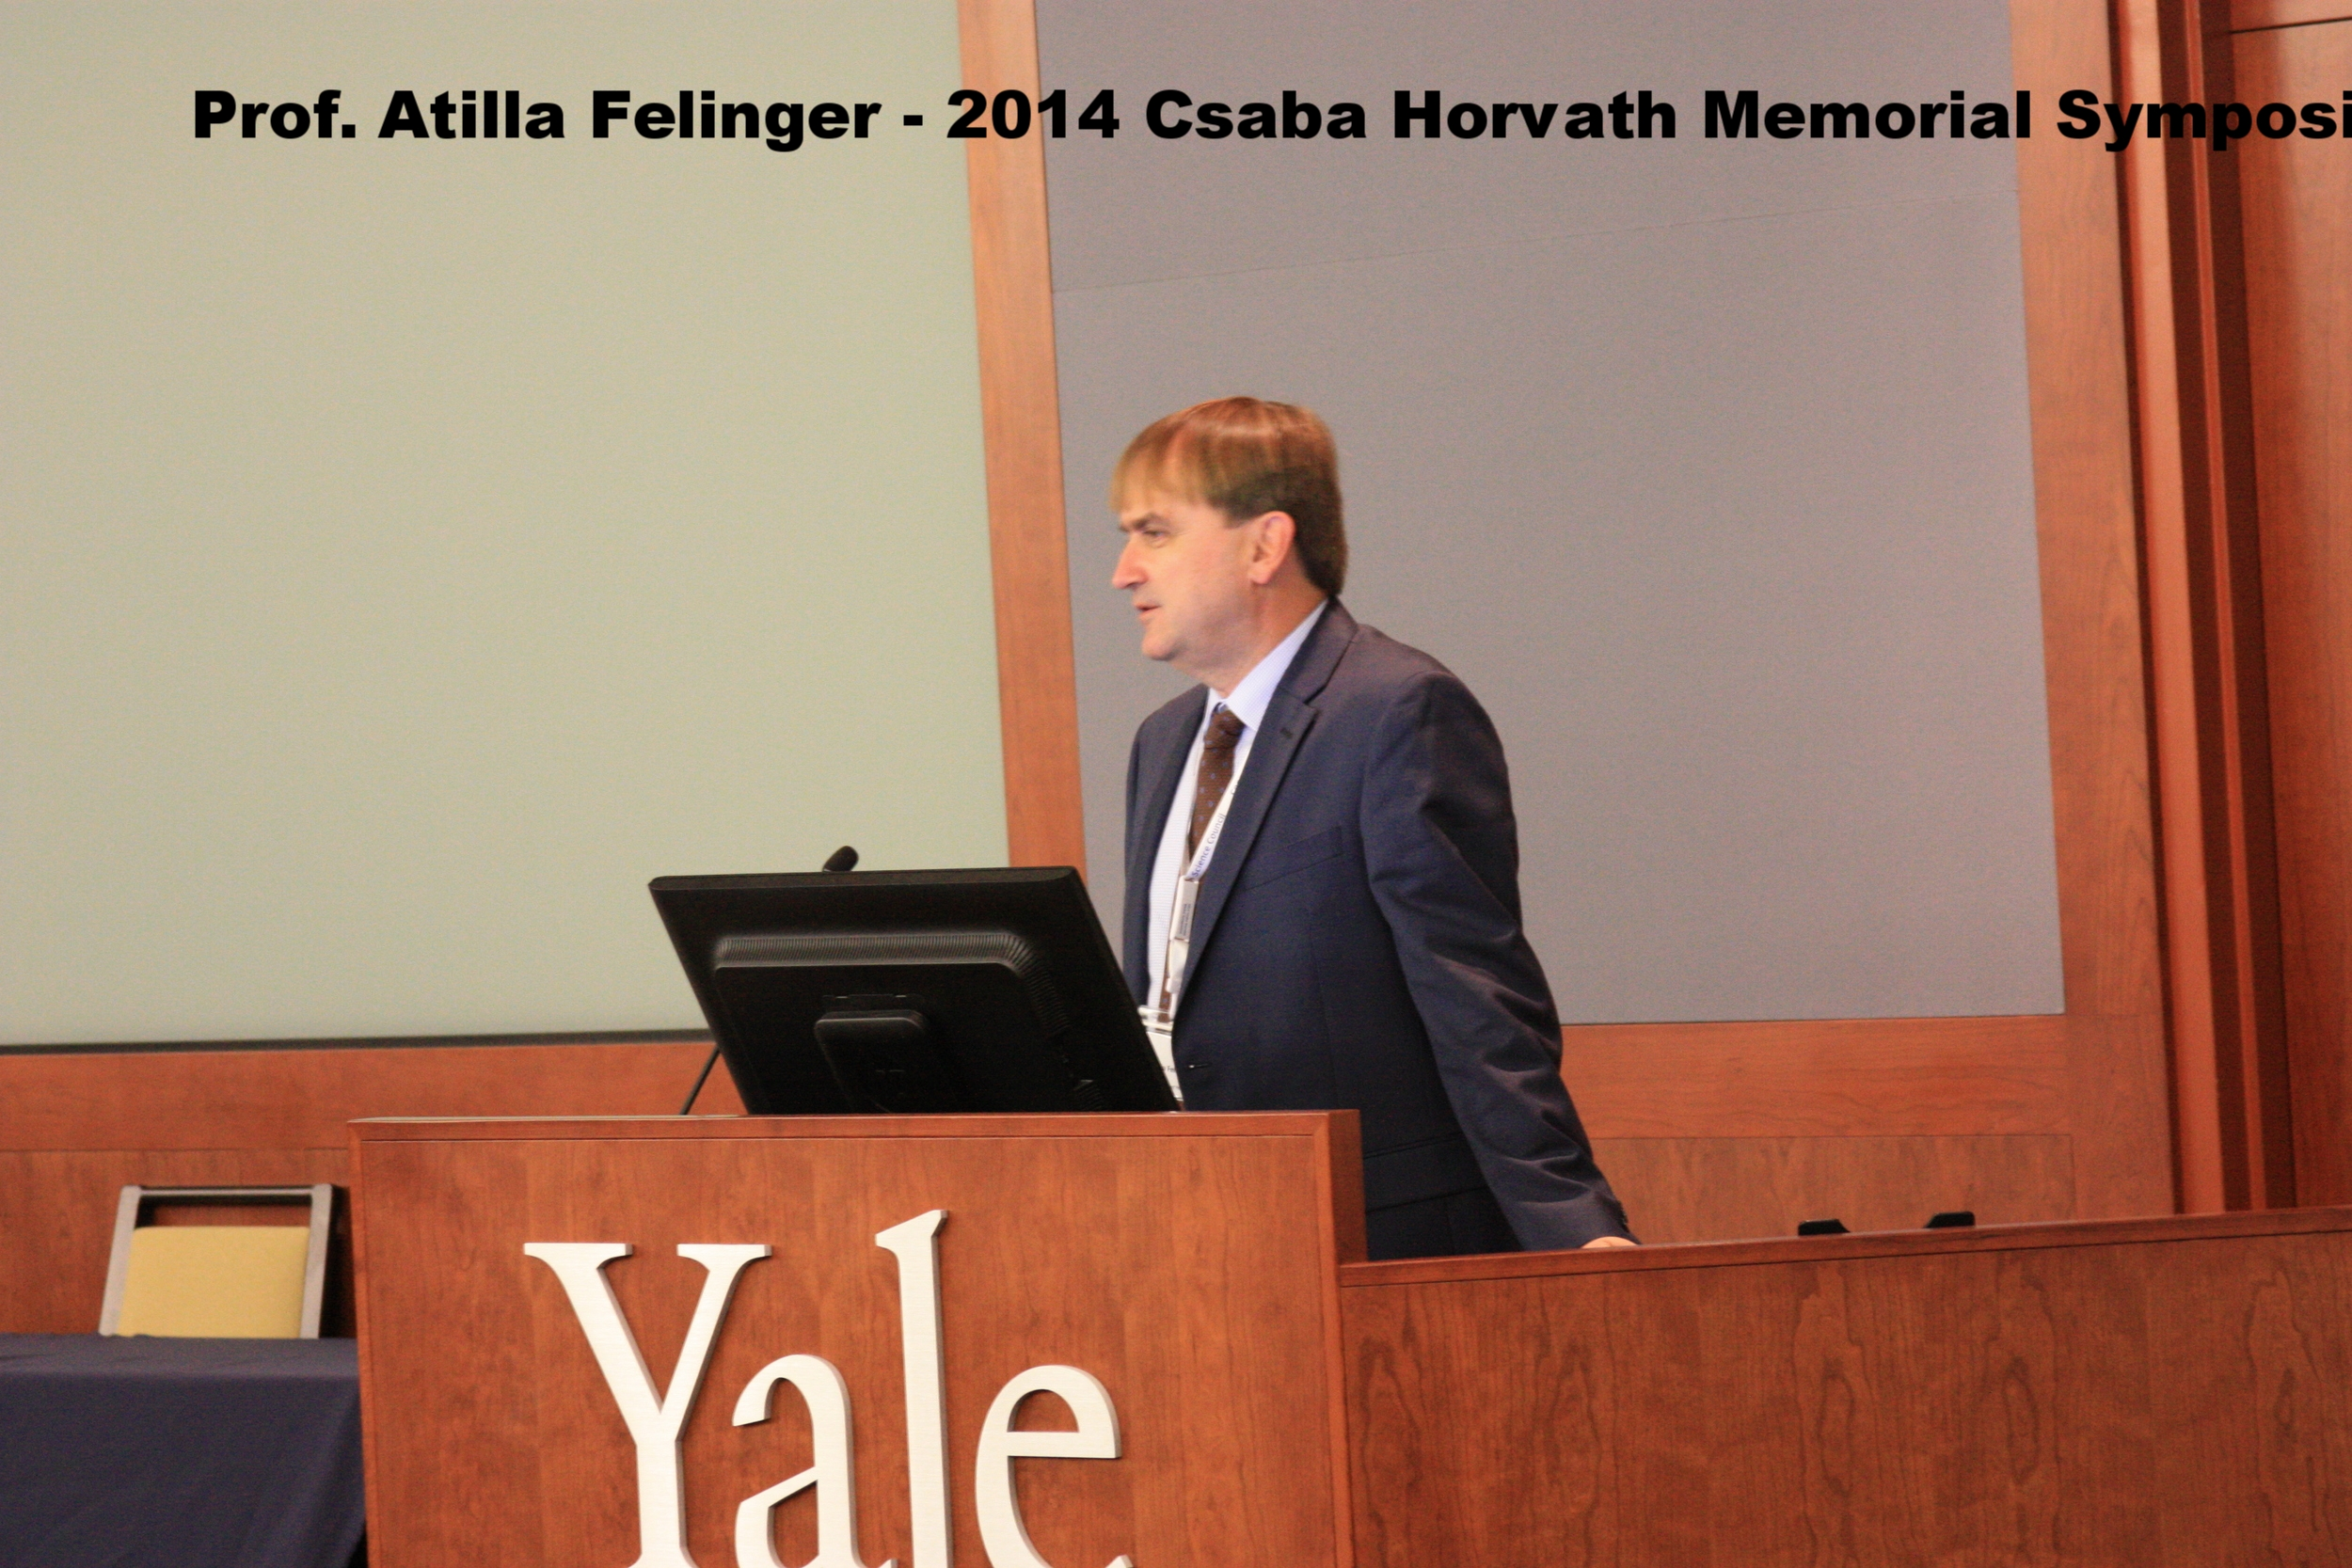 2014 Csaba Horvath Memorial Symposium